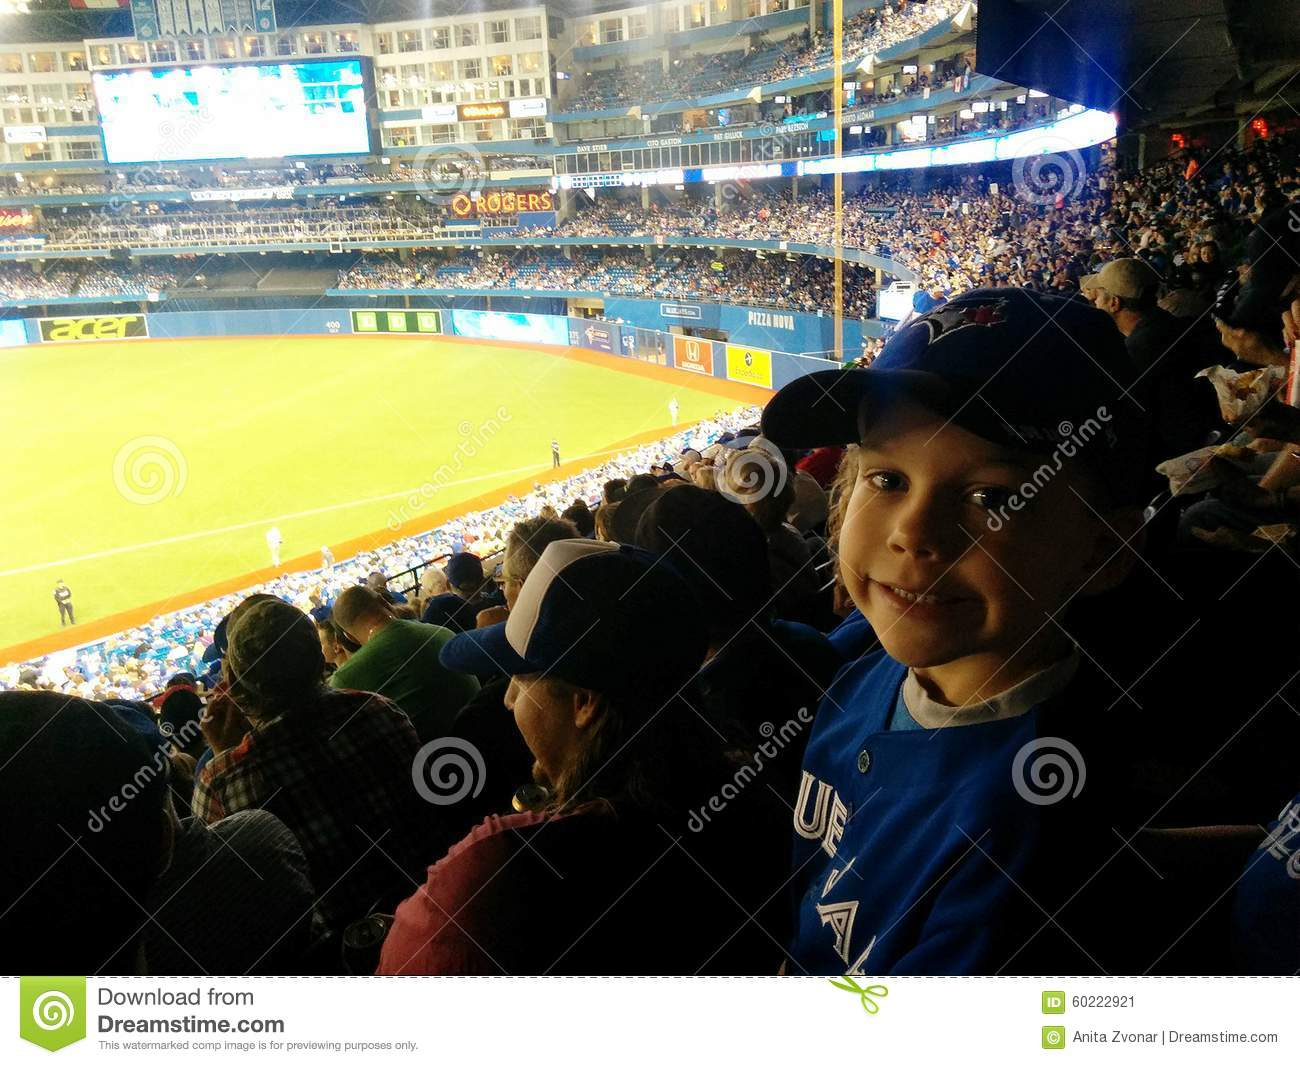 04b1c4723c2d Blue jays baseball at the rogers centre in toronto. Watching a jays game.  Young blue jays game. boy watching a blue jays game. kids at sporting  events. blue ...